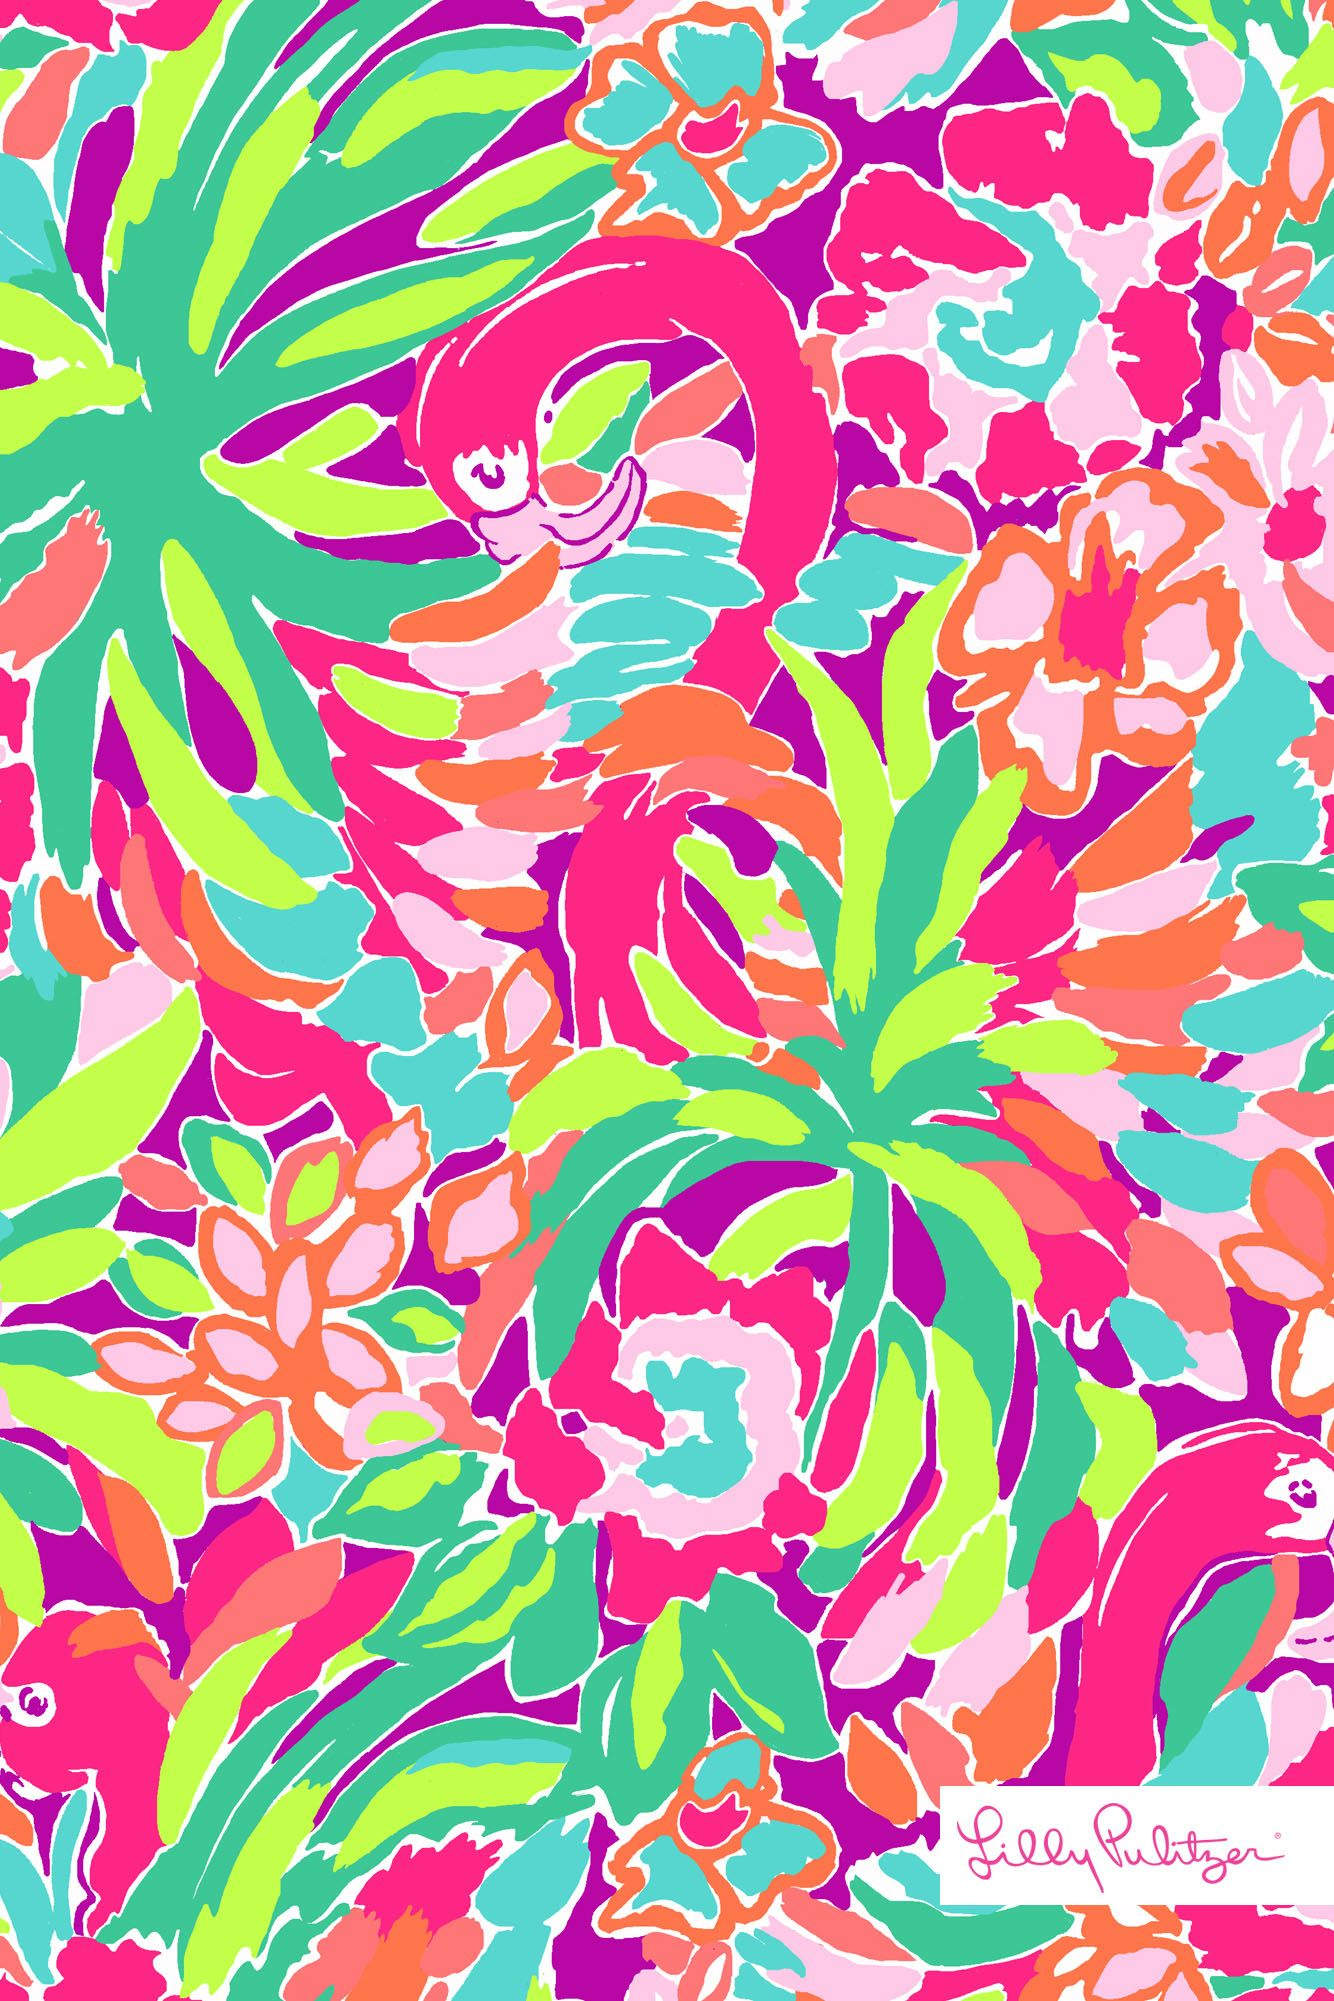 Lilly Pulitzer Wallpaper Lily Pulitzer Wallpaper Lilly Pulitzer